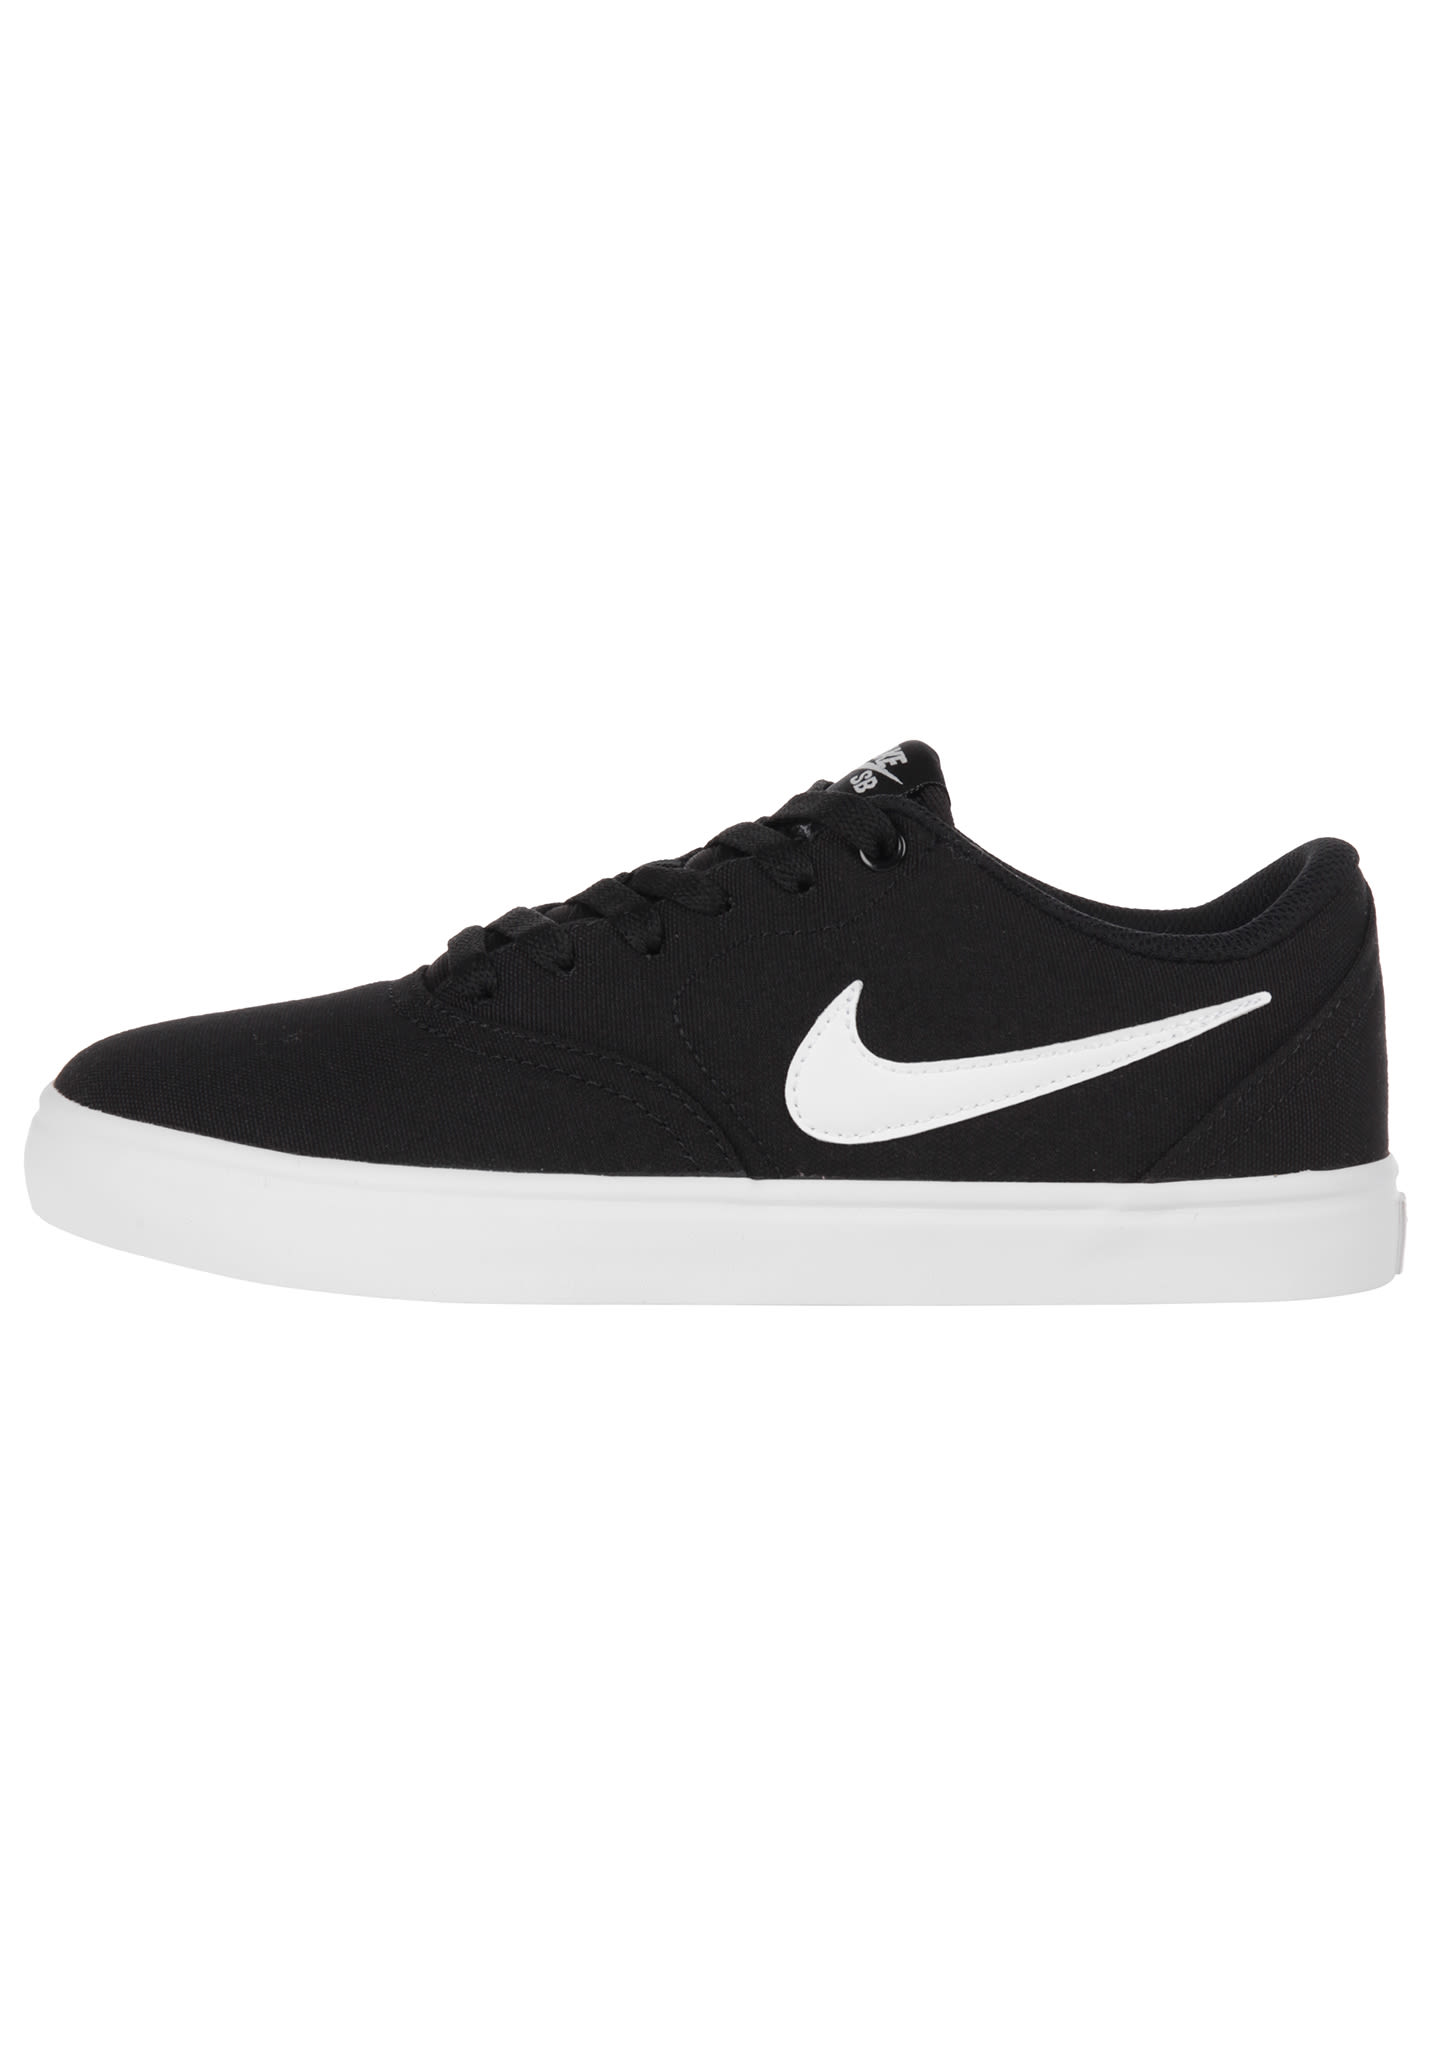 new concept 923d5 d636f NIKE SB Check Solar - Sneakers for Women - Black - Planet Sports